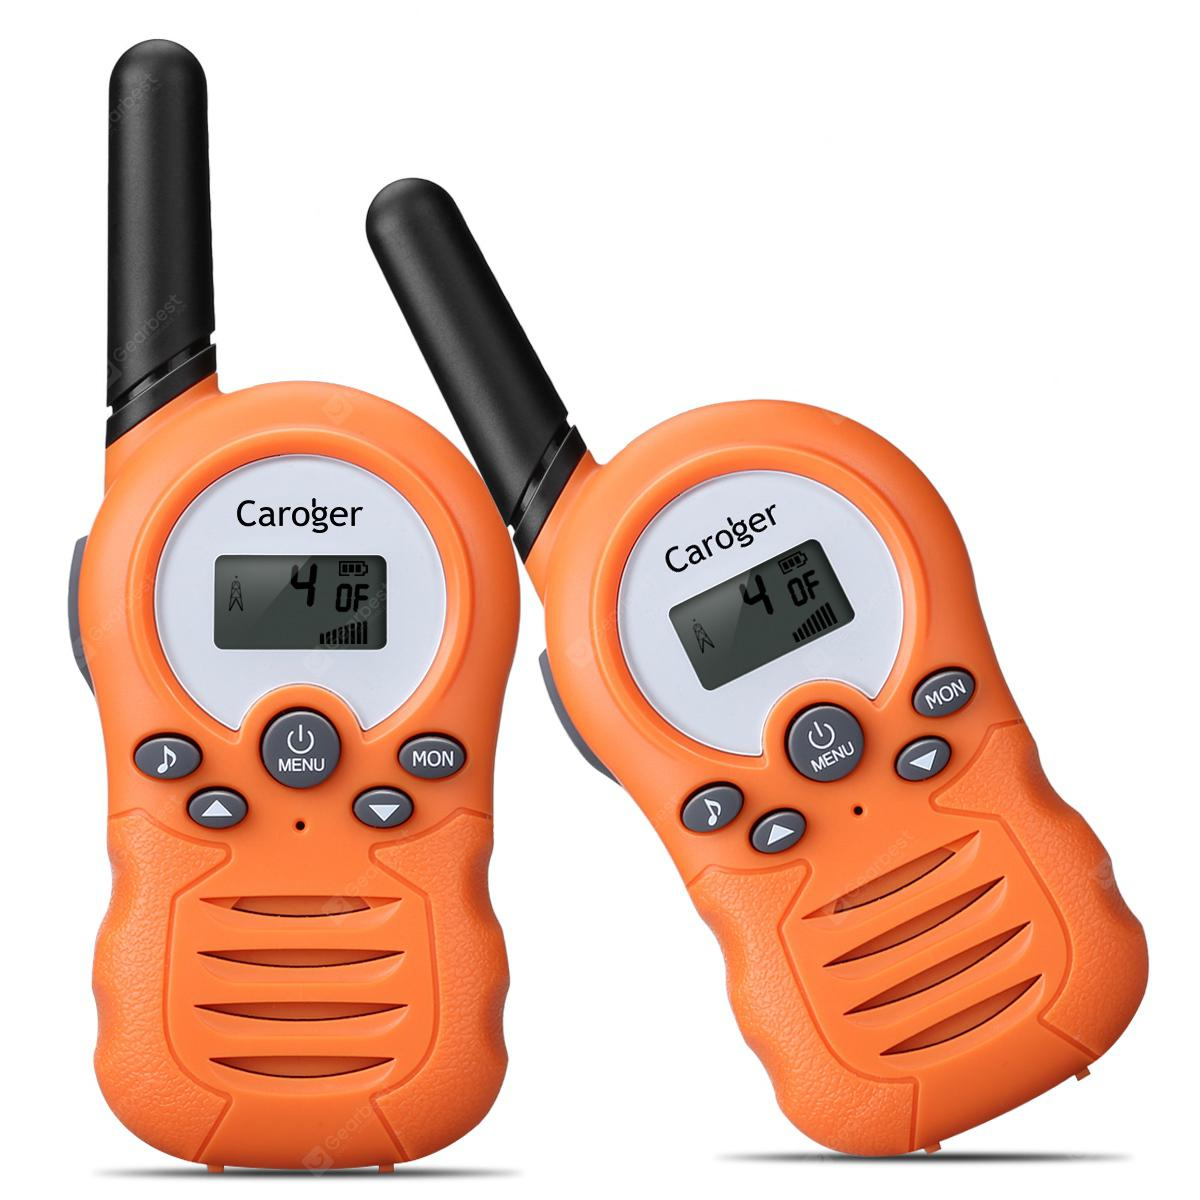 Caroger CR388A Lisensfrie Walkie Talkie 22packs 2 Kanal FRS / GMRS 462 / 467MHZ Two Way Radio Opptil Meters 3300 / 2 Miles Range Håndholdt Interphone Orange - ORANGE PAPAYA